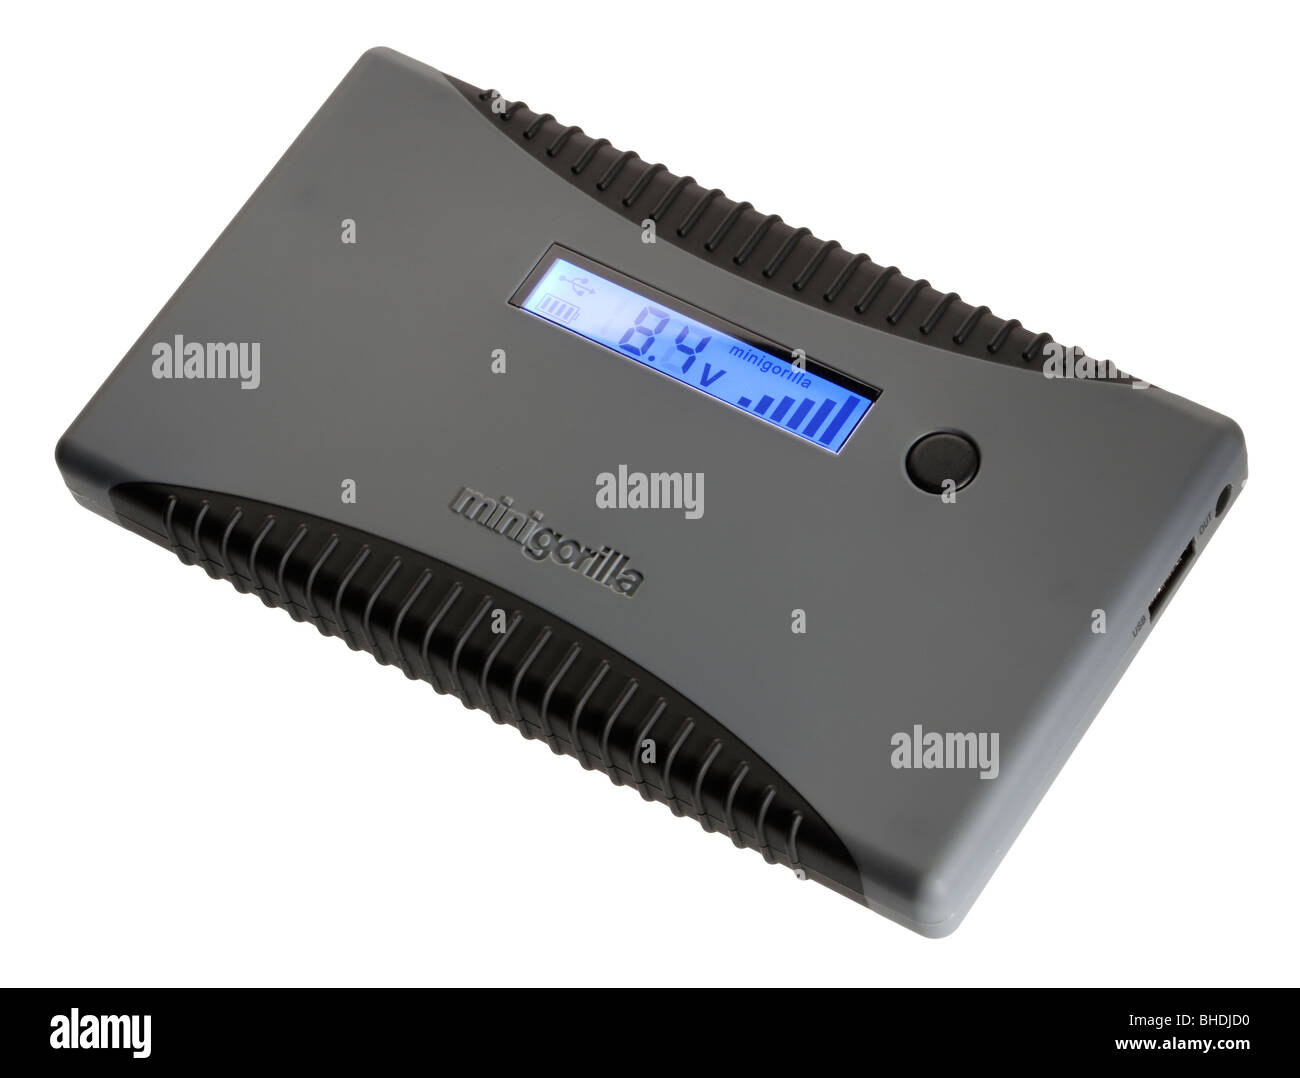 Mini gorilla power device battery charger - Stock Image